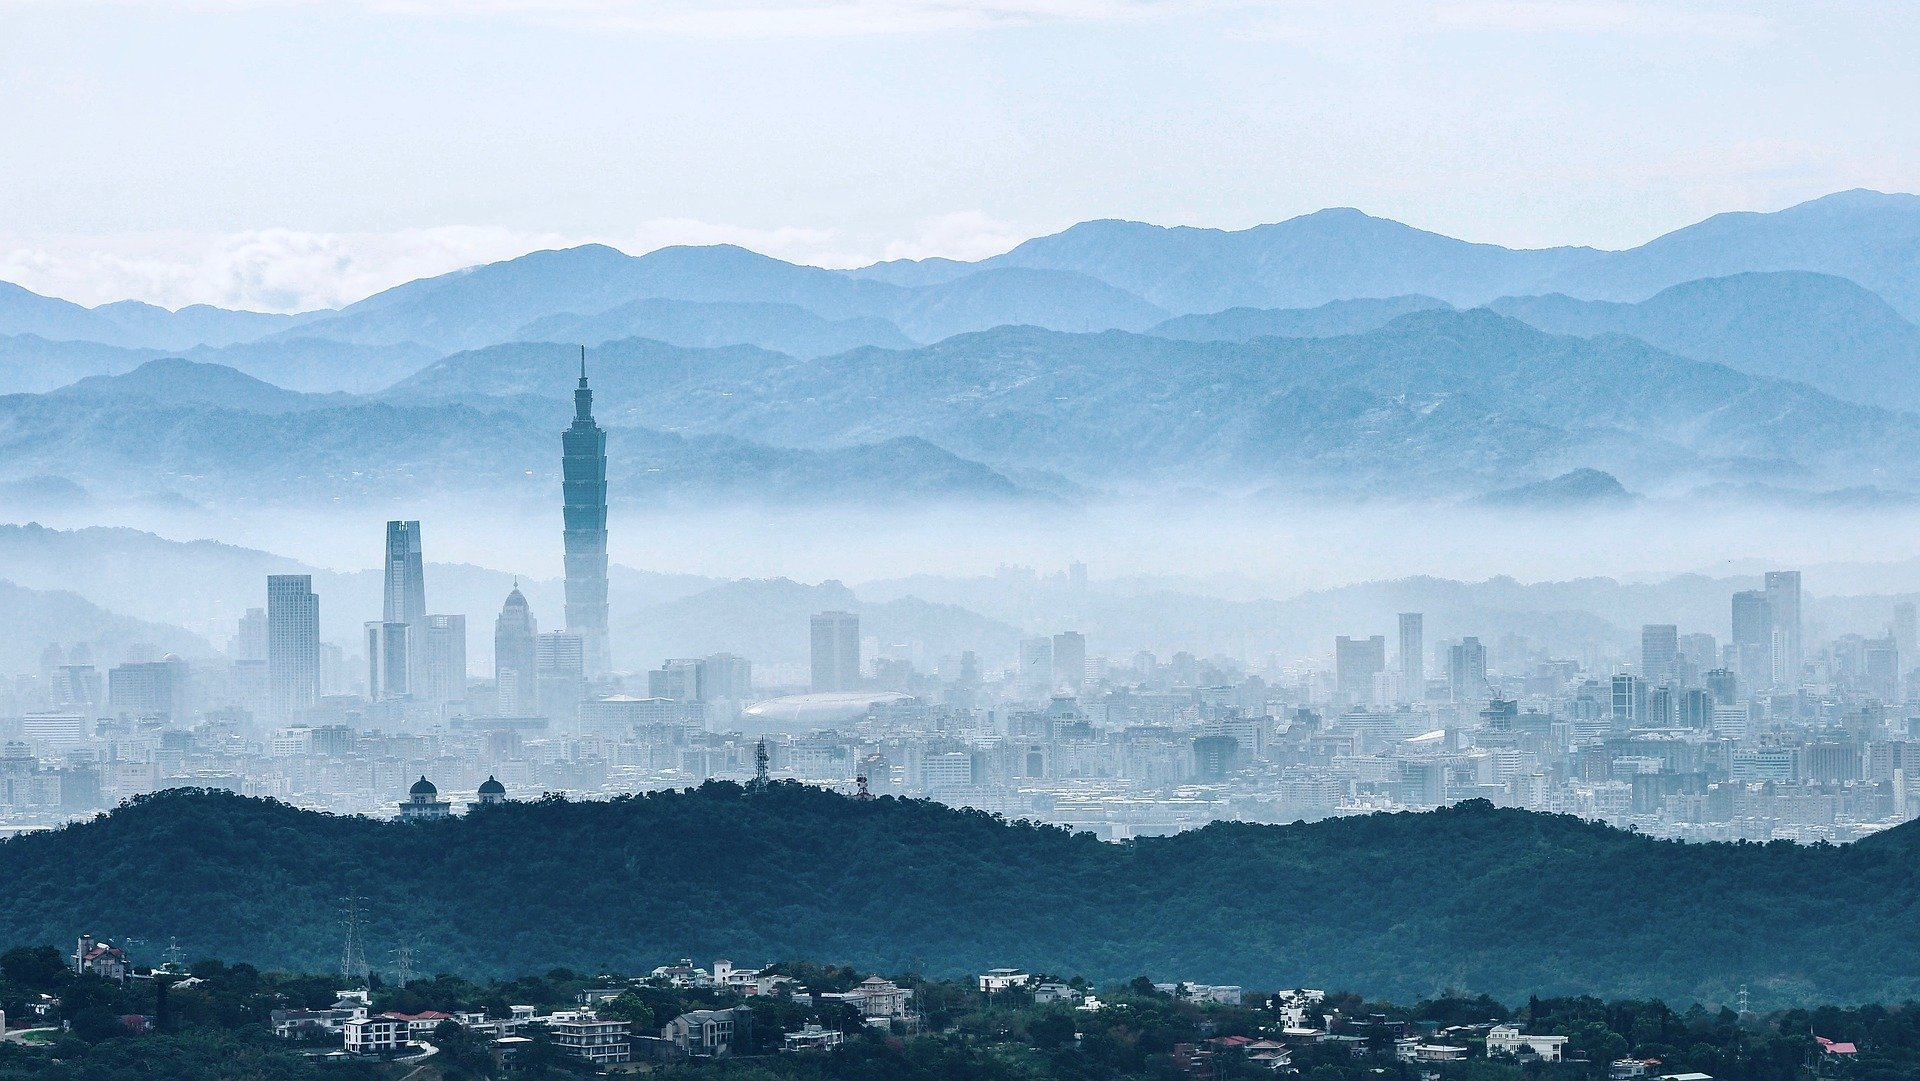 As China Bars Reporters, Taiwan Emerges as a Journalist Hub